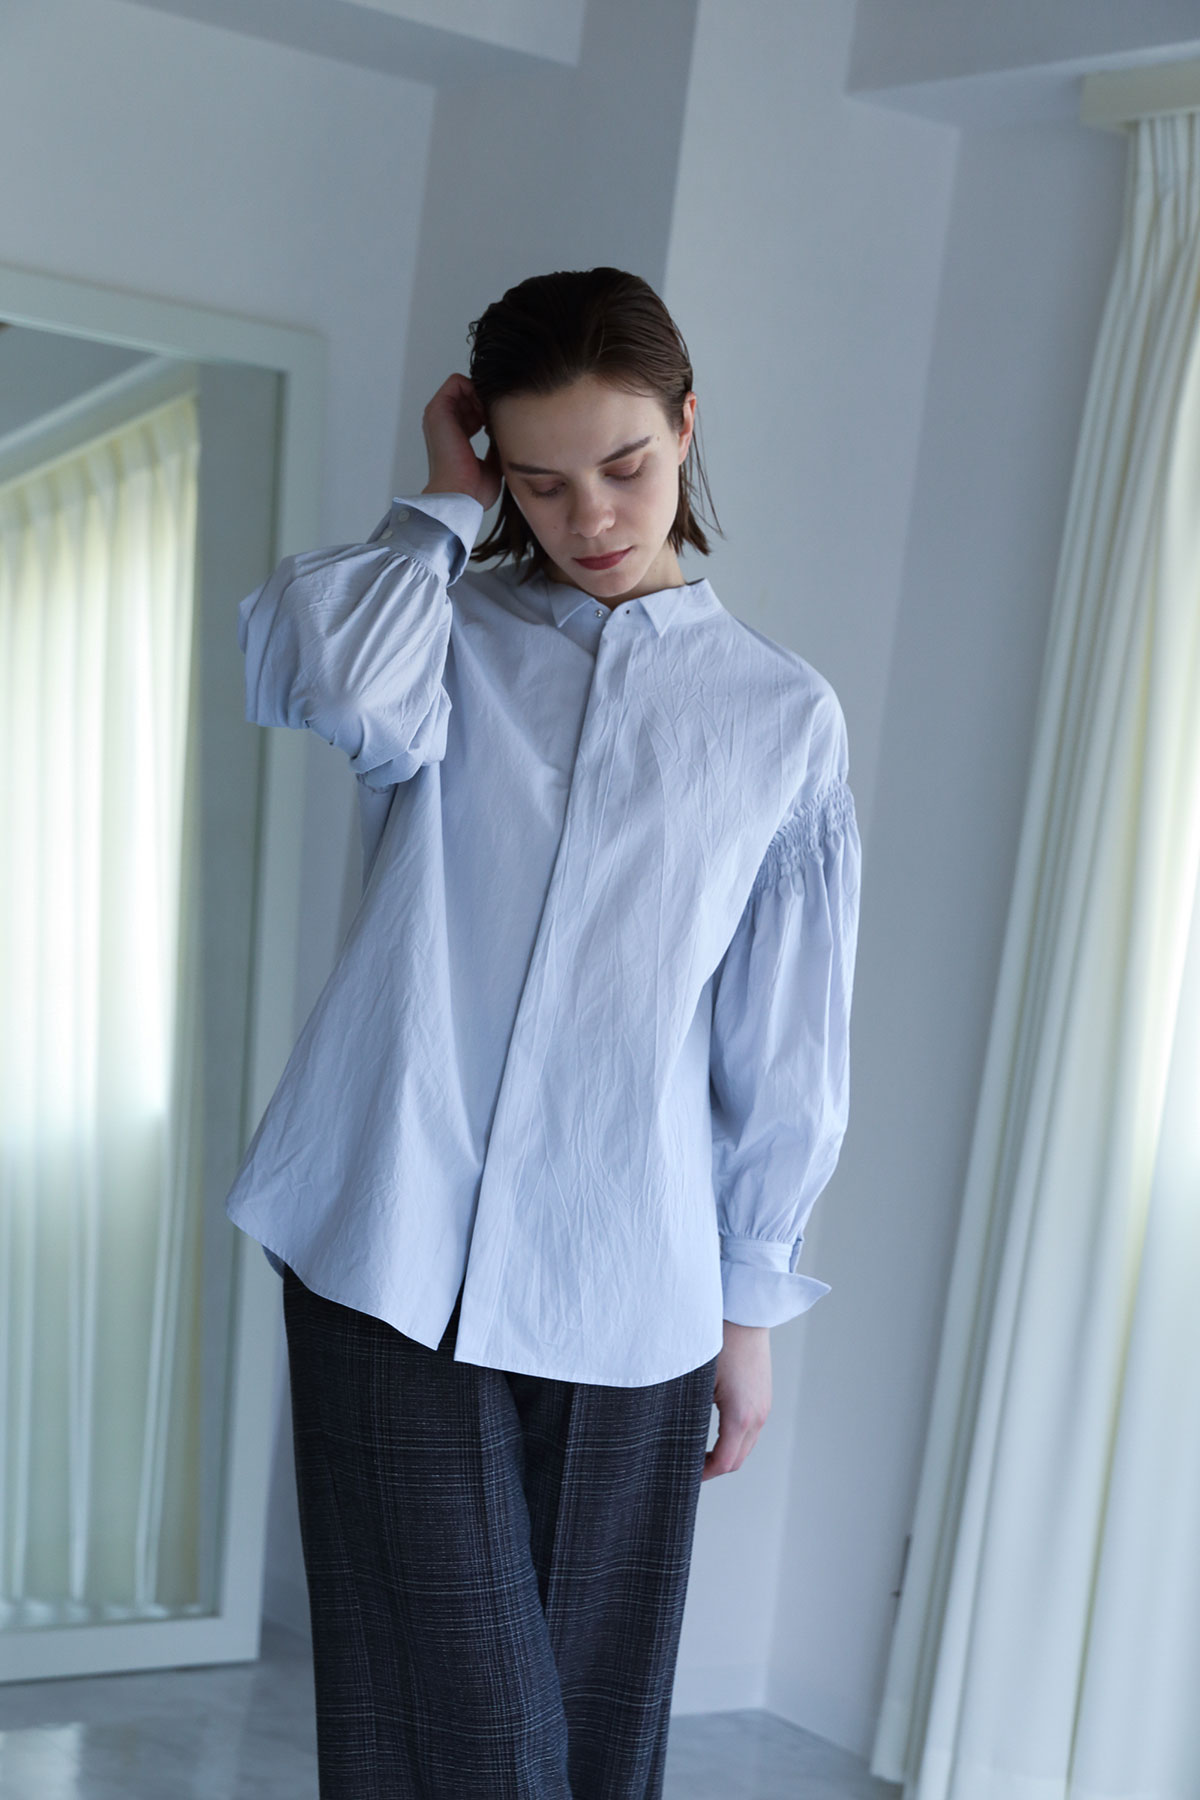 BO204613-lgray Salt Shrinkage Dairy/Dinner Taxido Shirts -L GRAY-【BO204613】